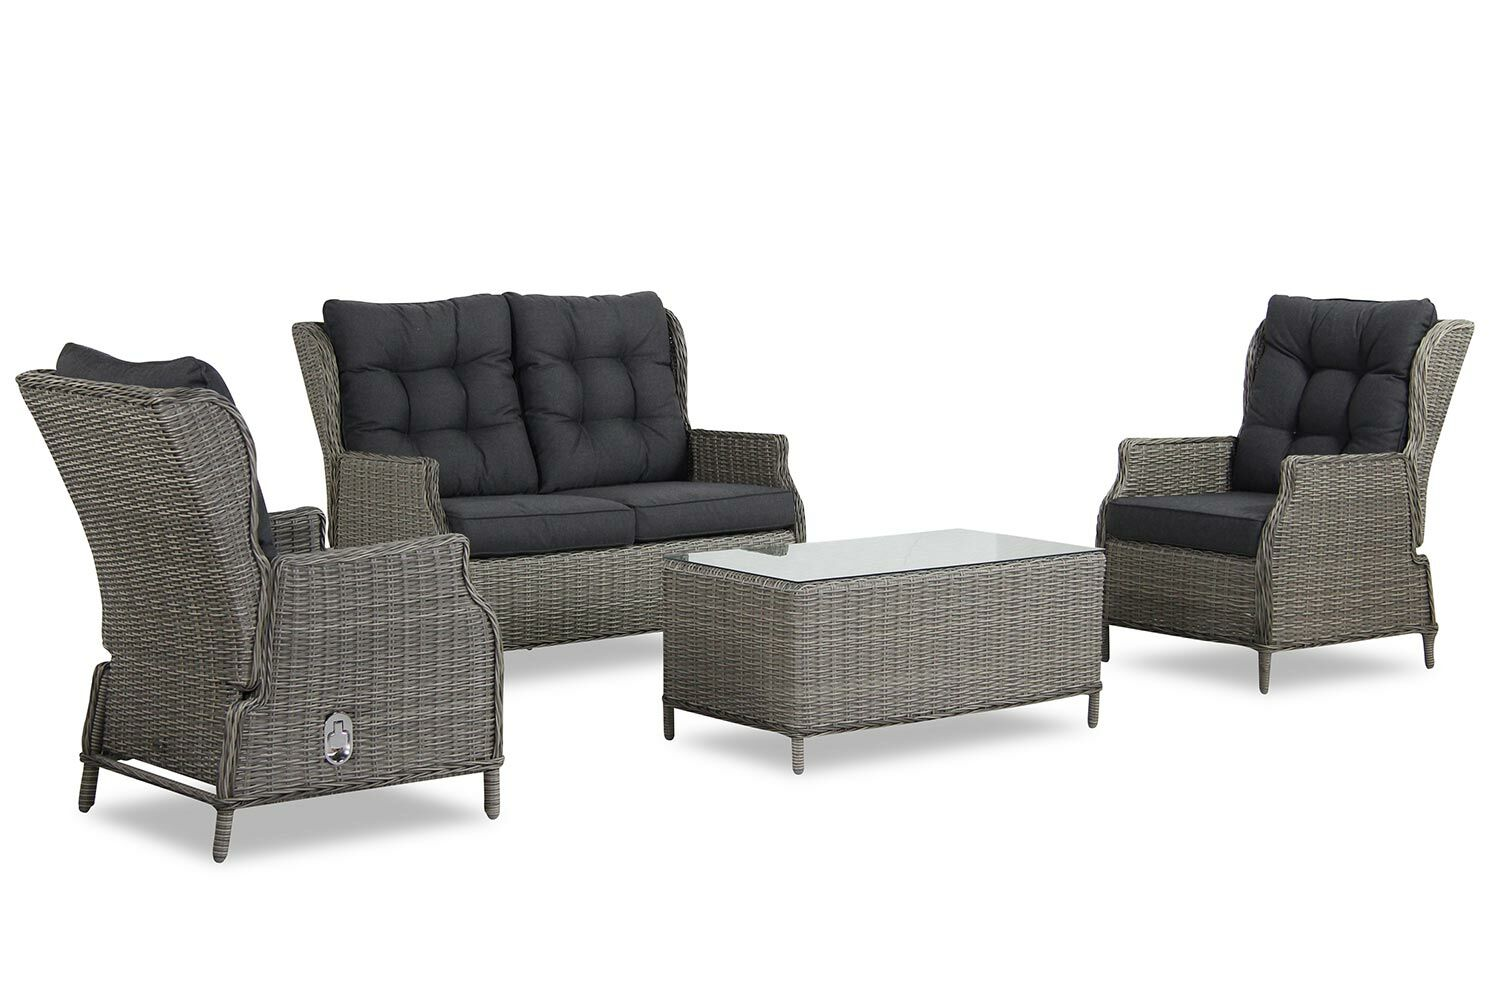 Loungeset Bank 2 Fauteuils.Garden Collections New Castle Stoel Bank Loungeset 4 Delig